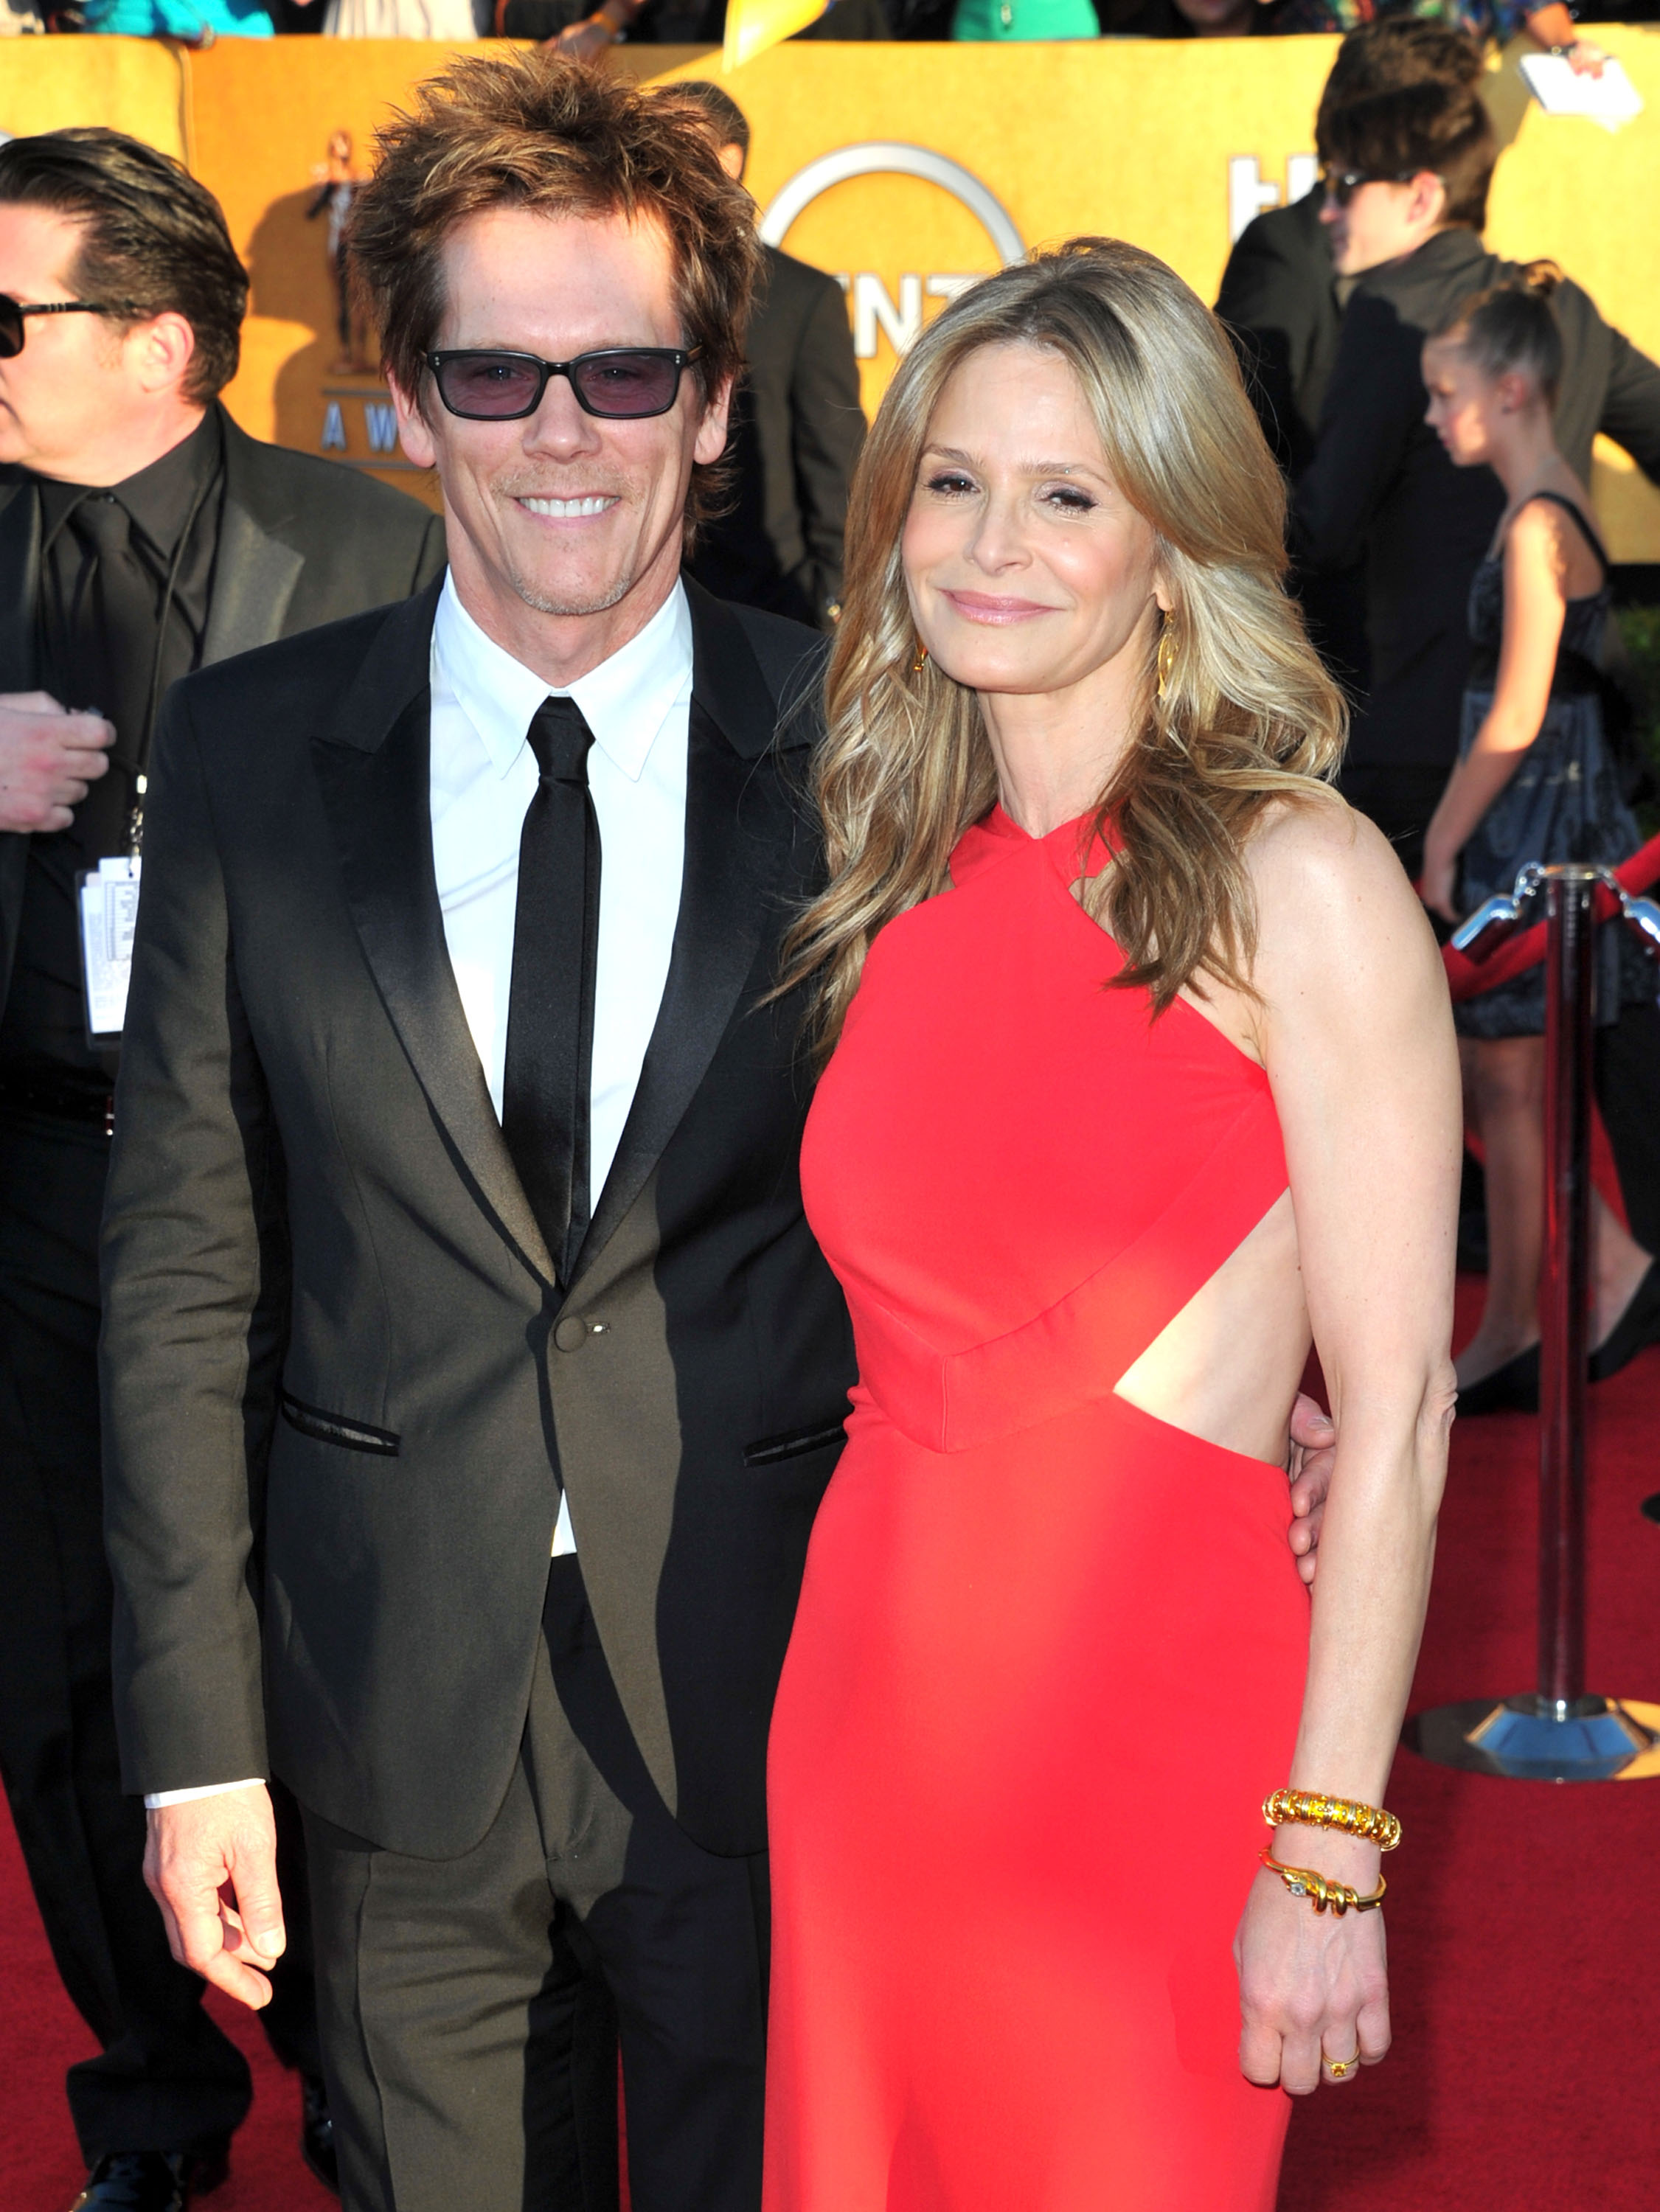 Kevin Bacon and Kyra Sedgwick at the SAG Awards